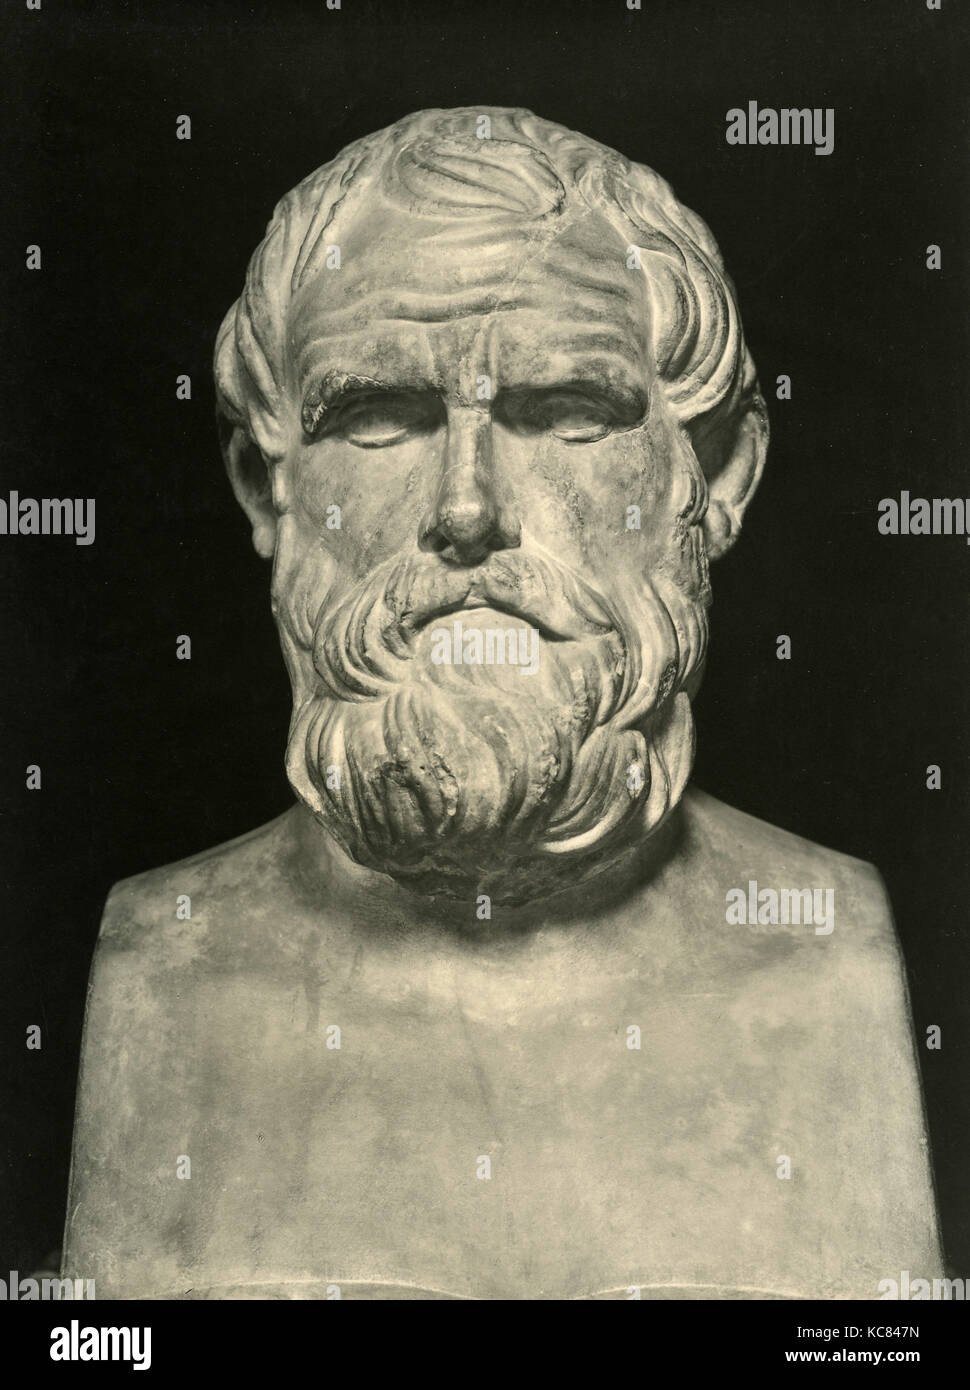 aristophanes the comic writer This comic development comes after the lifetime of euripides and his contemporary, the most familiar writer of old comedy, aristophanes euripides - life and career.